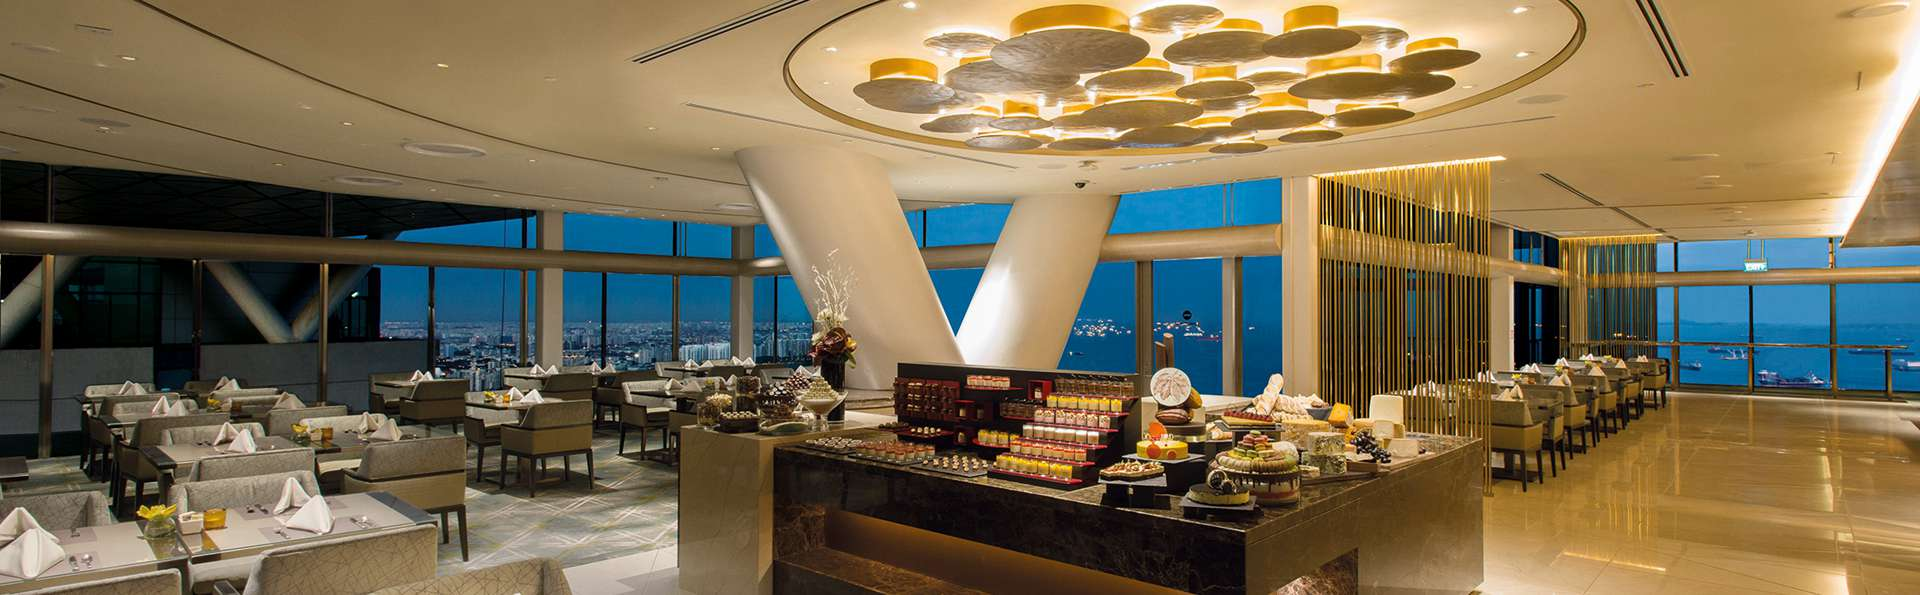 Cheese & Chocolate Buffet in Marina Bay Sands